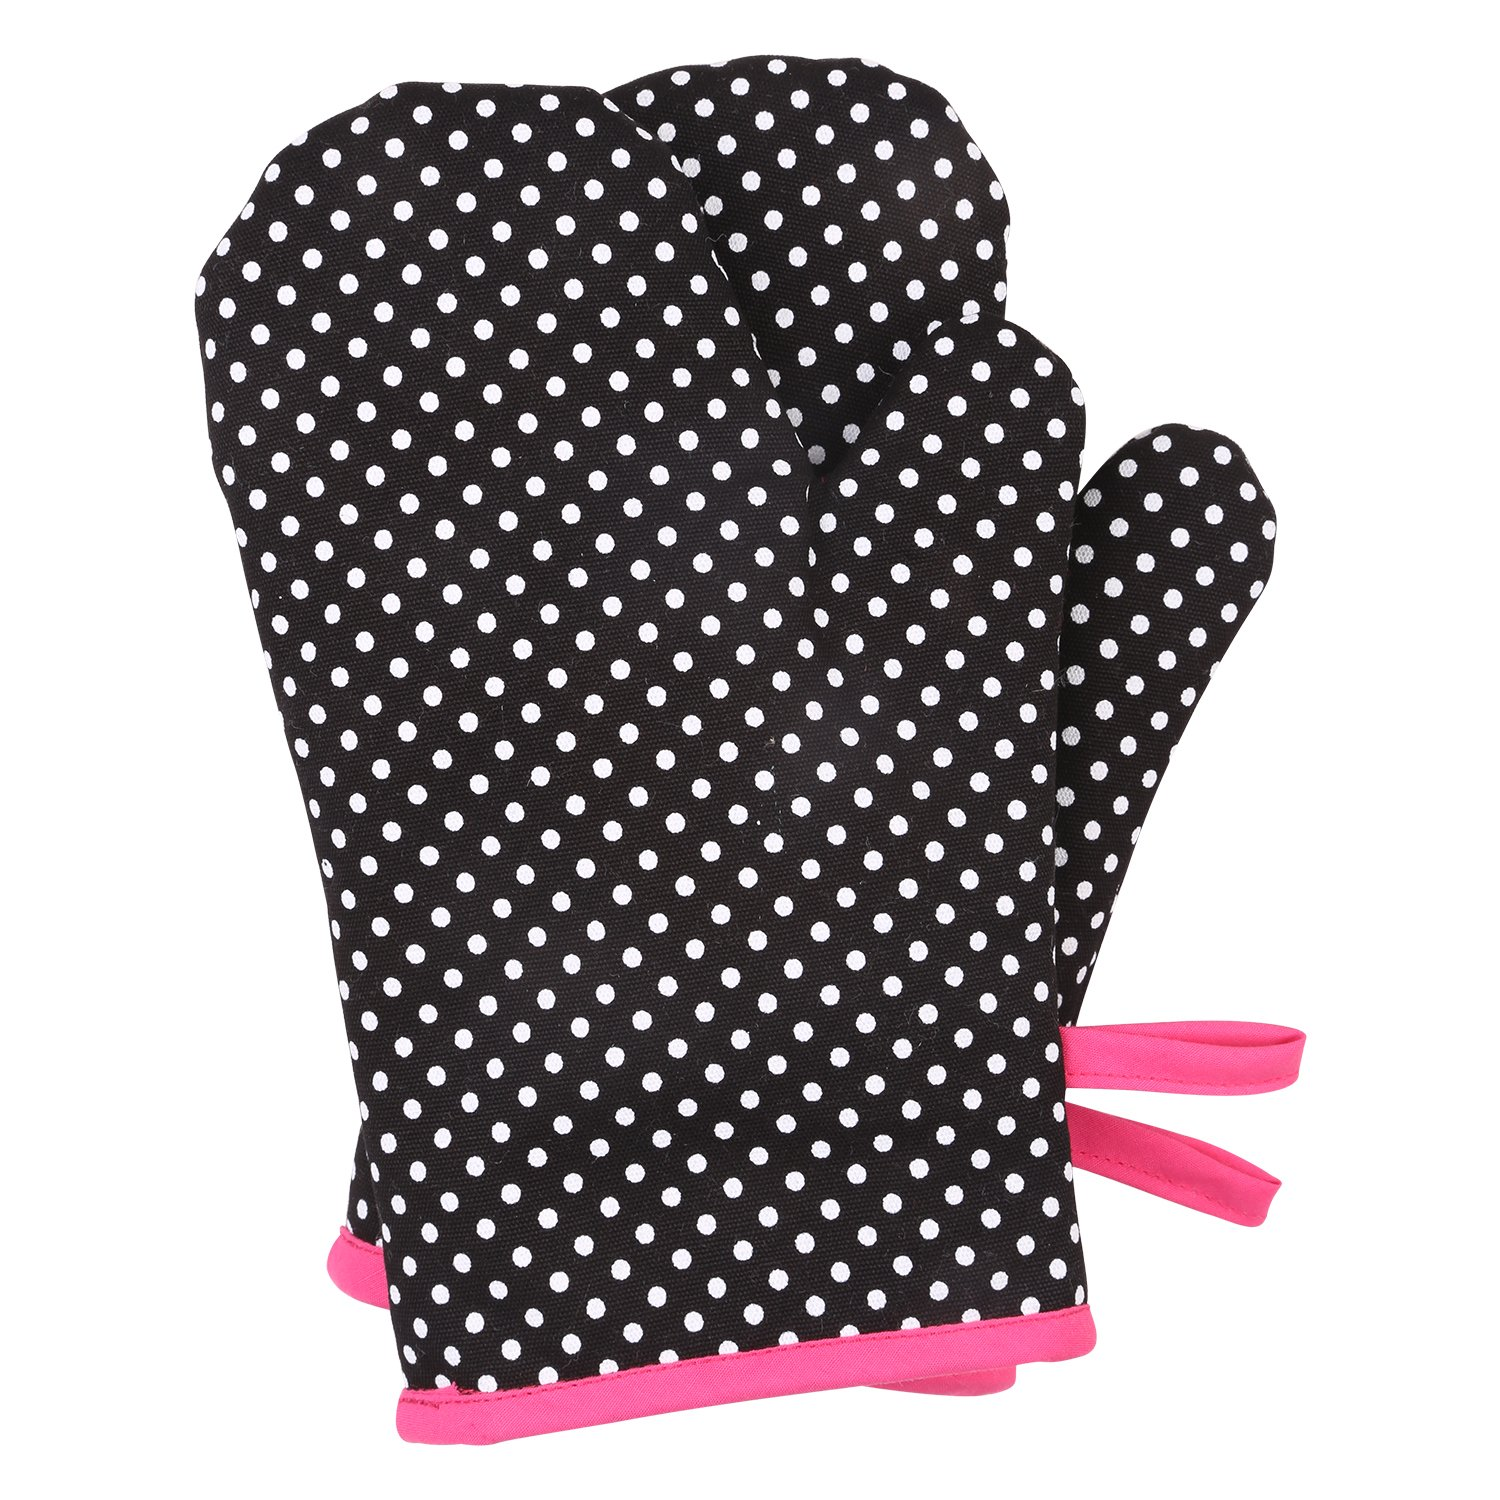 Neoviva Cotton Canvas Oven Mitt Set for Child, Pack of 2, Polka Dots Black